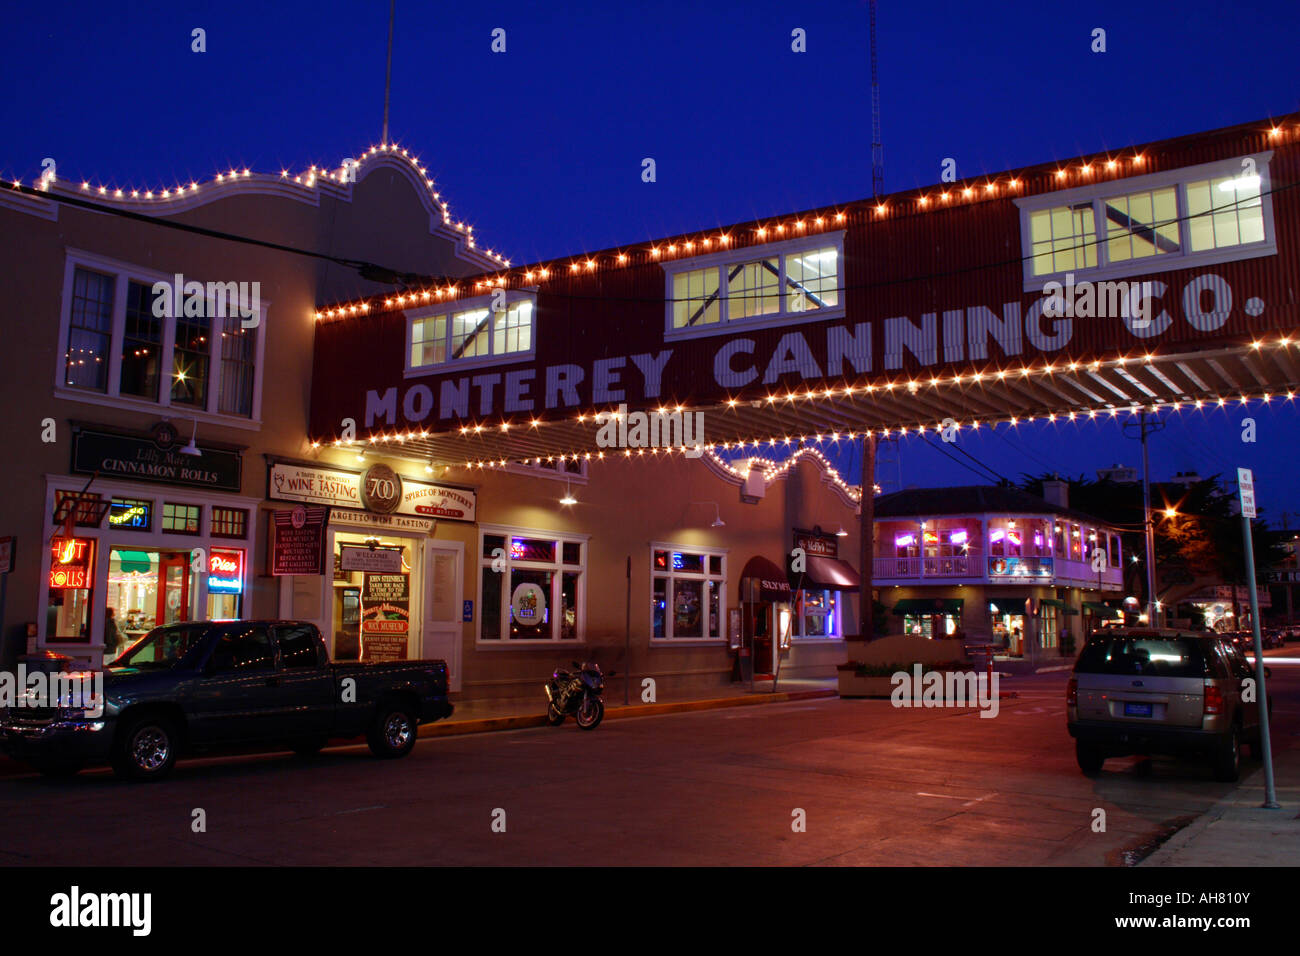 Cannery Row at night Stock Photo